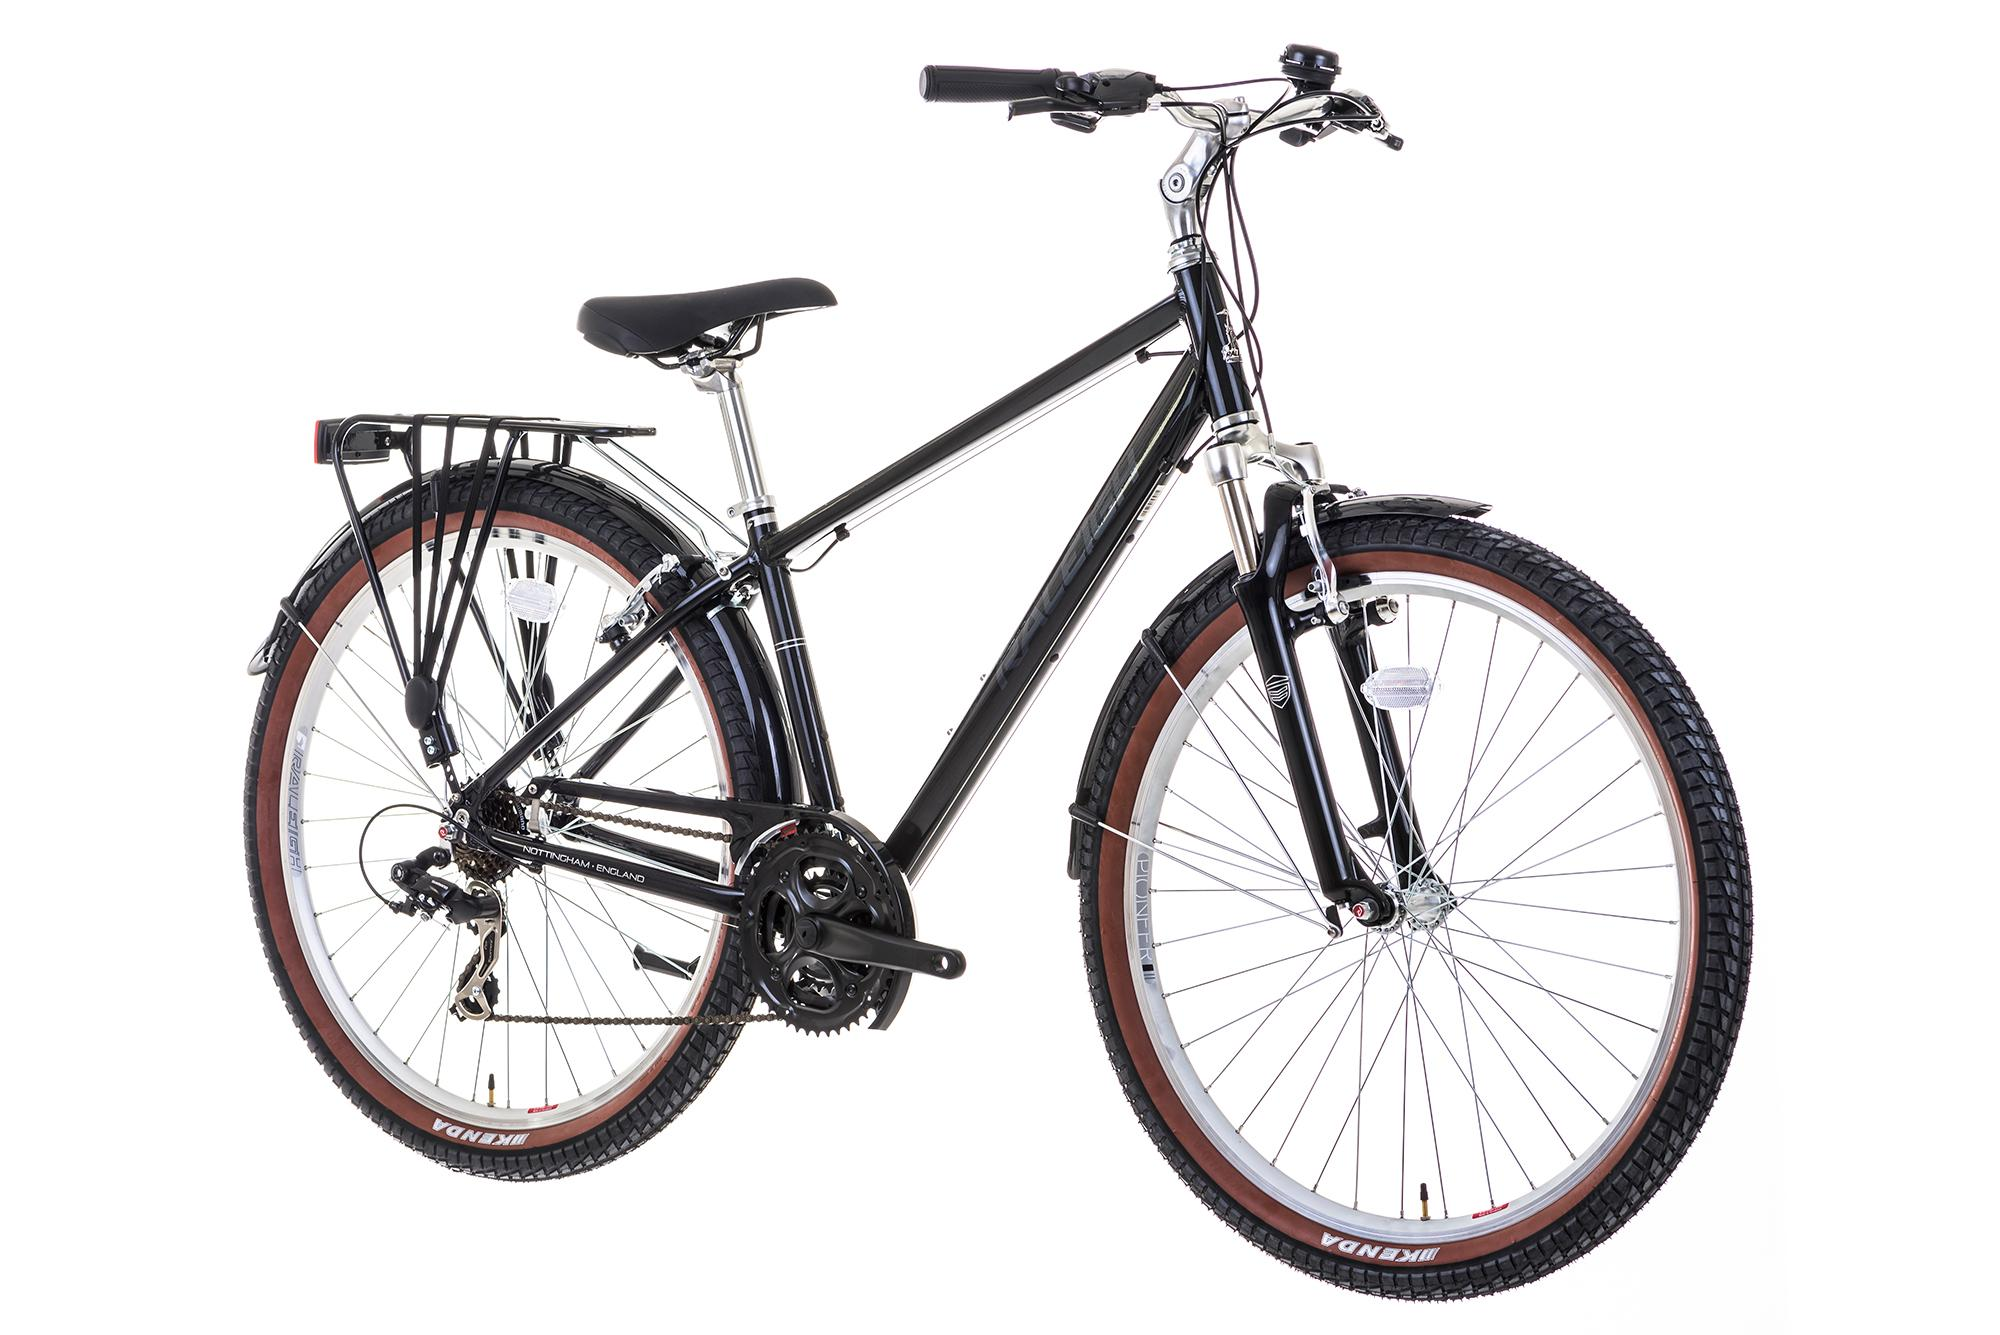 Front view of the Raleigh Pioneer Trail crossbar bike in black